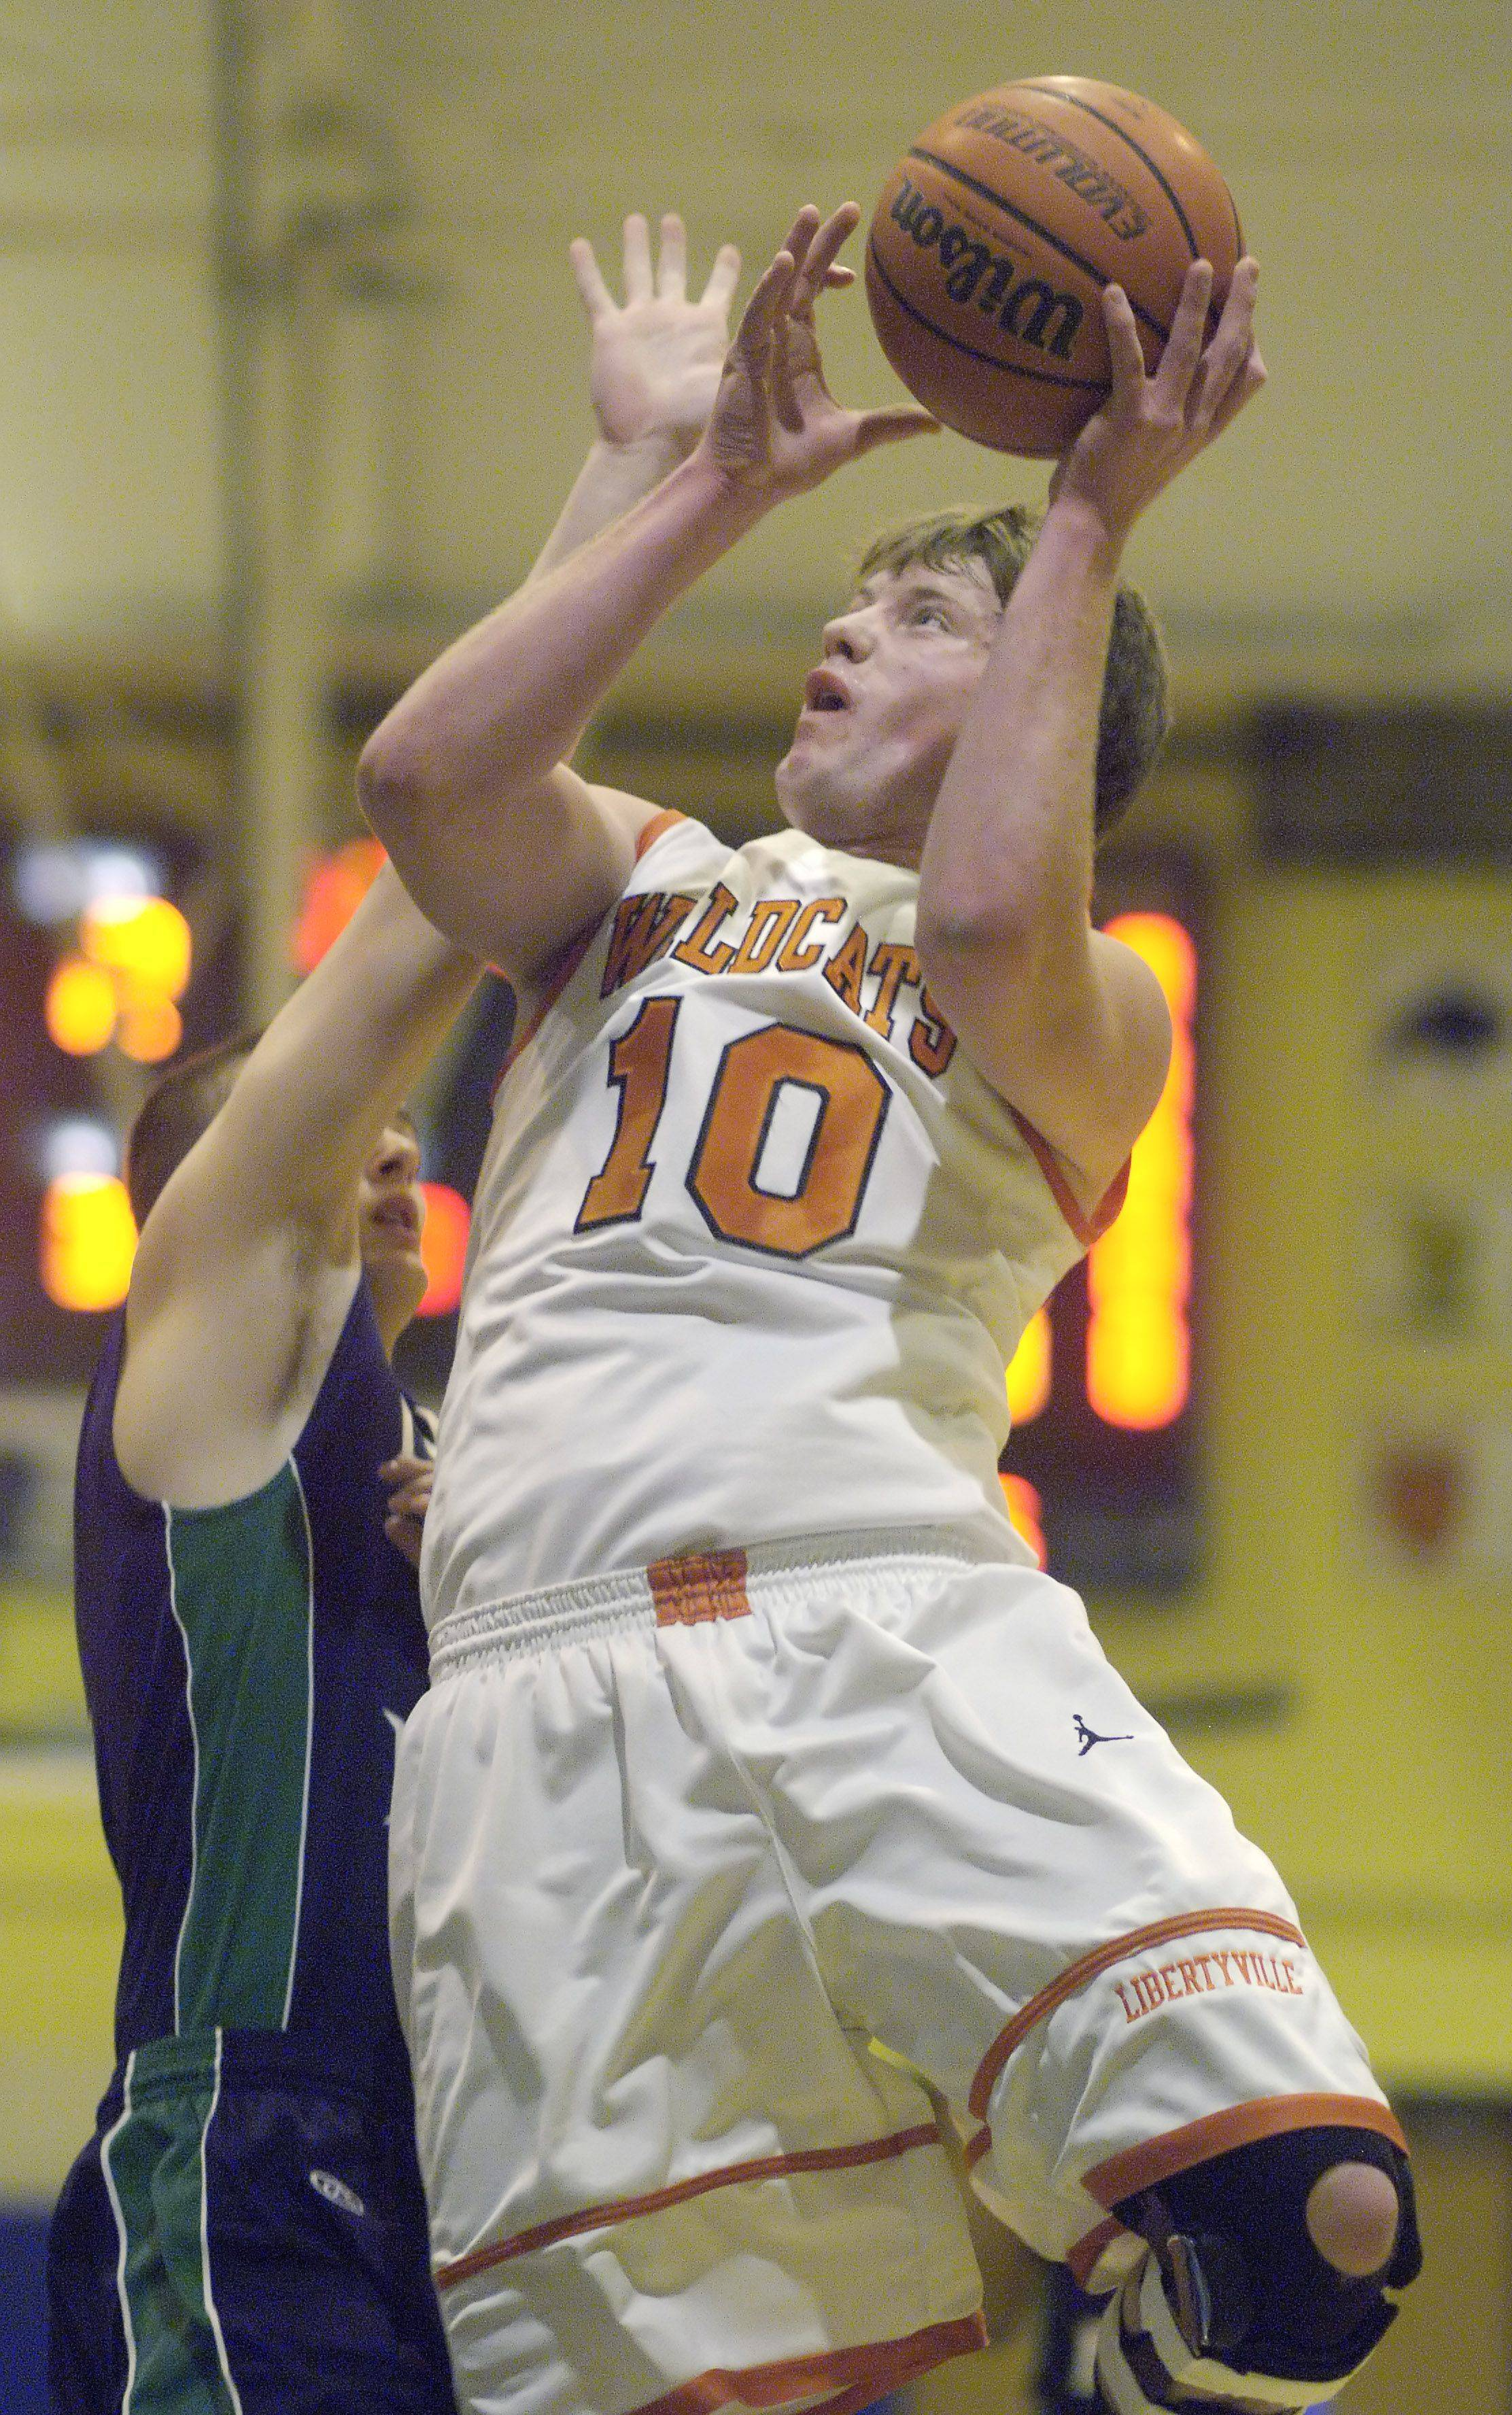 Libertyville's Luke Mathewson drives hard to the basket against Notre Dame during the Wheeling Tournament Wednesday.